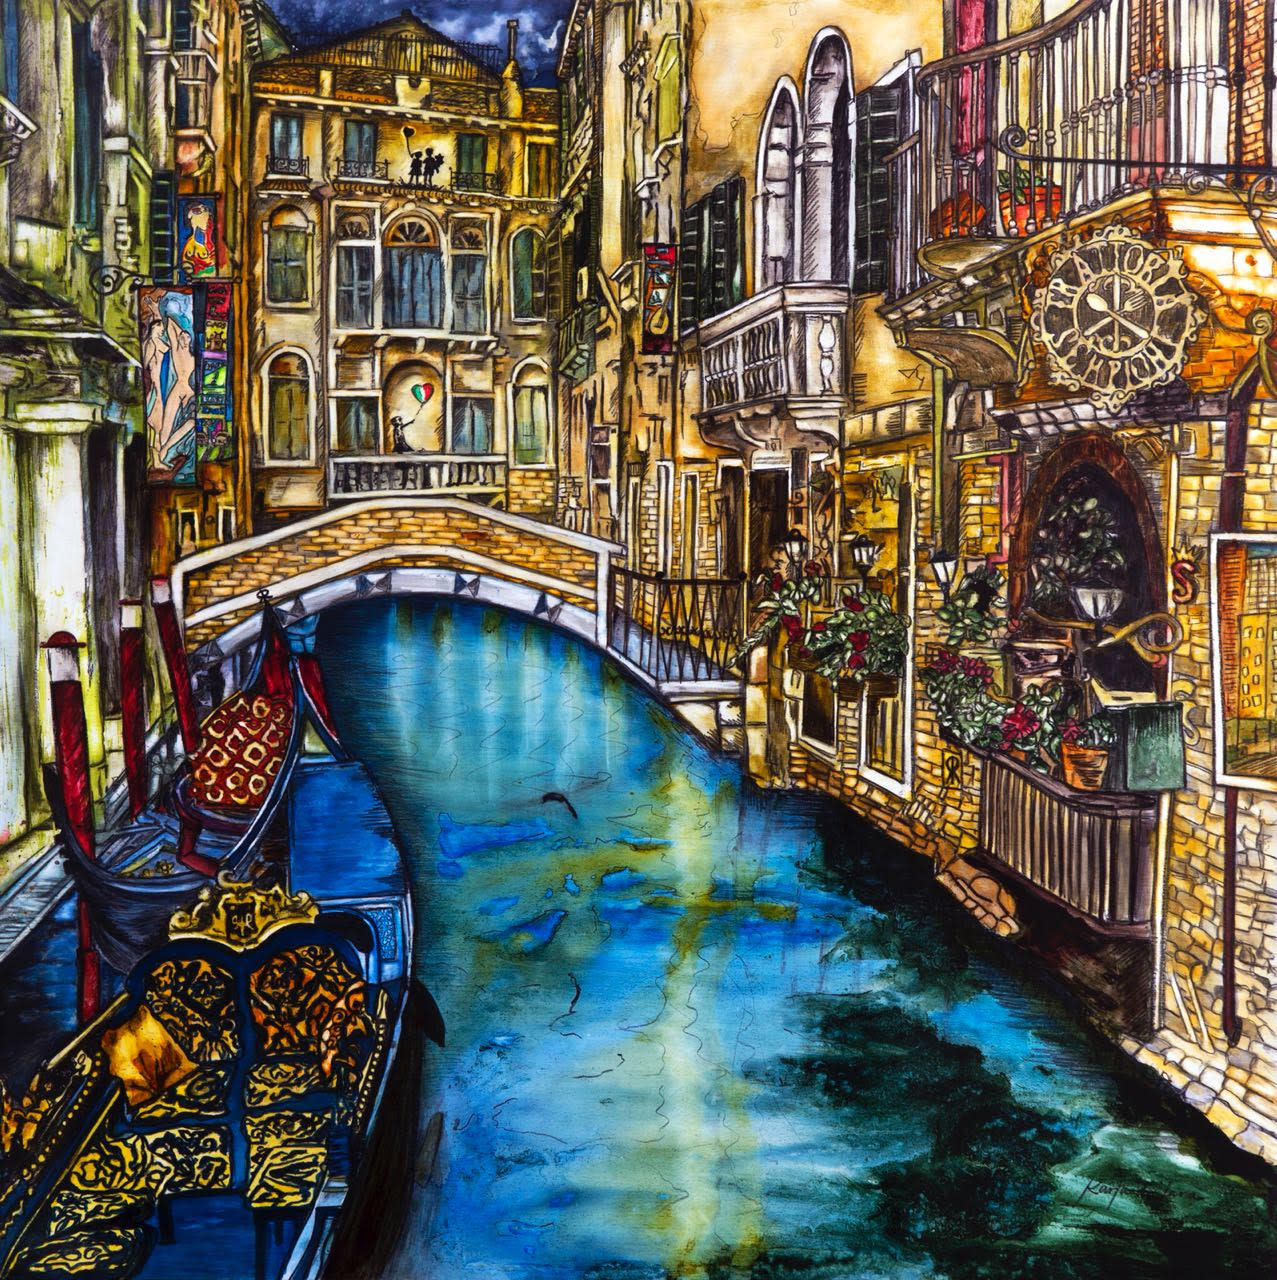 Summer in venice painting karla de lara wet paint nyc naxelf